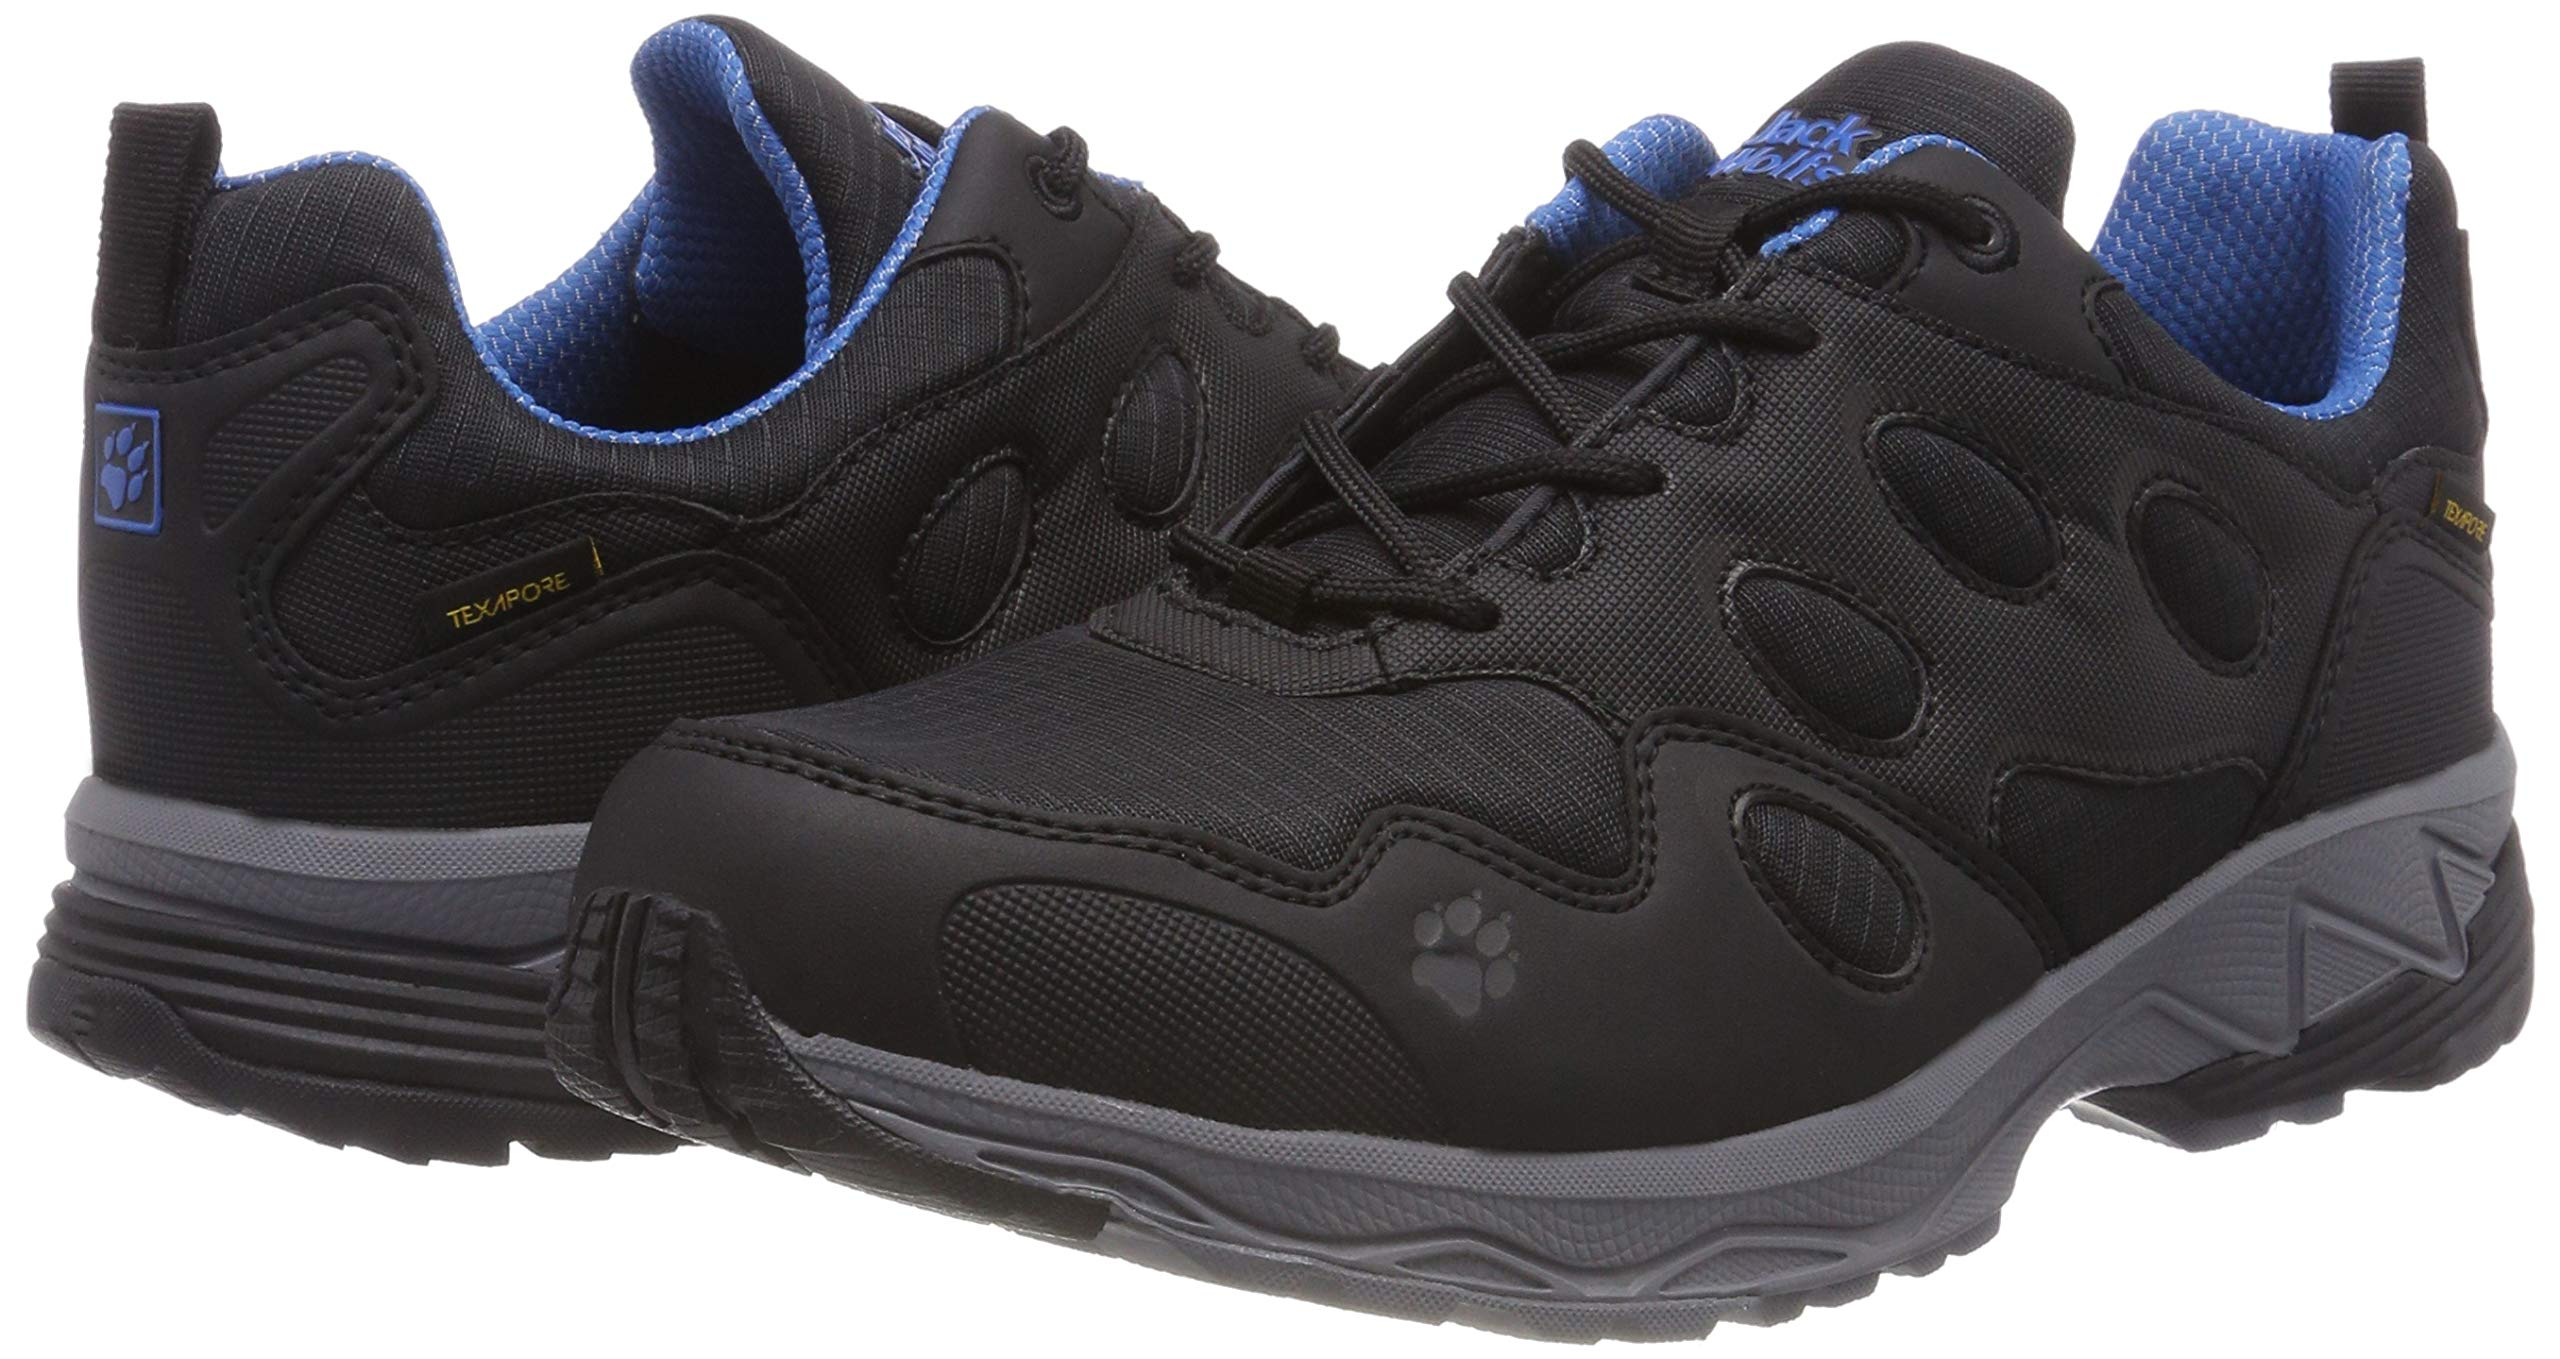 Jack Wolfskin Men's Venture Fly Texapore Low M Rise Hiking Shoes 5